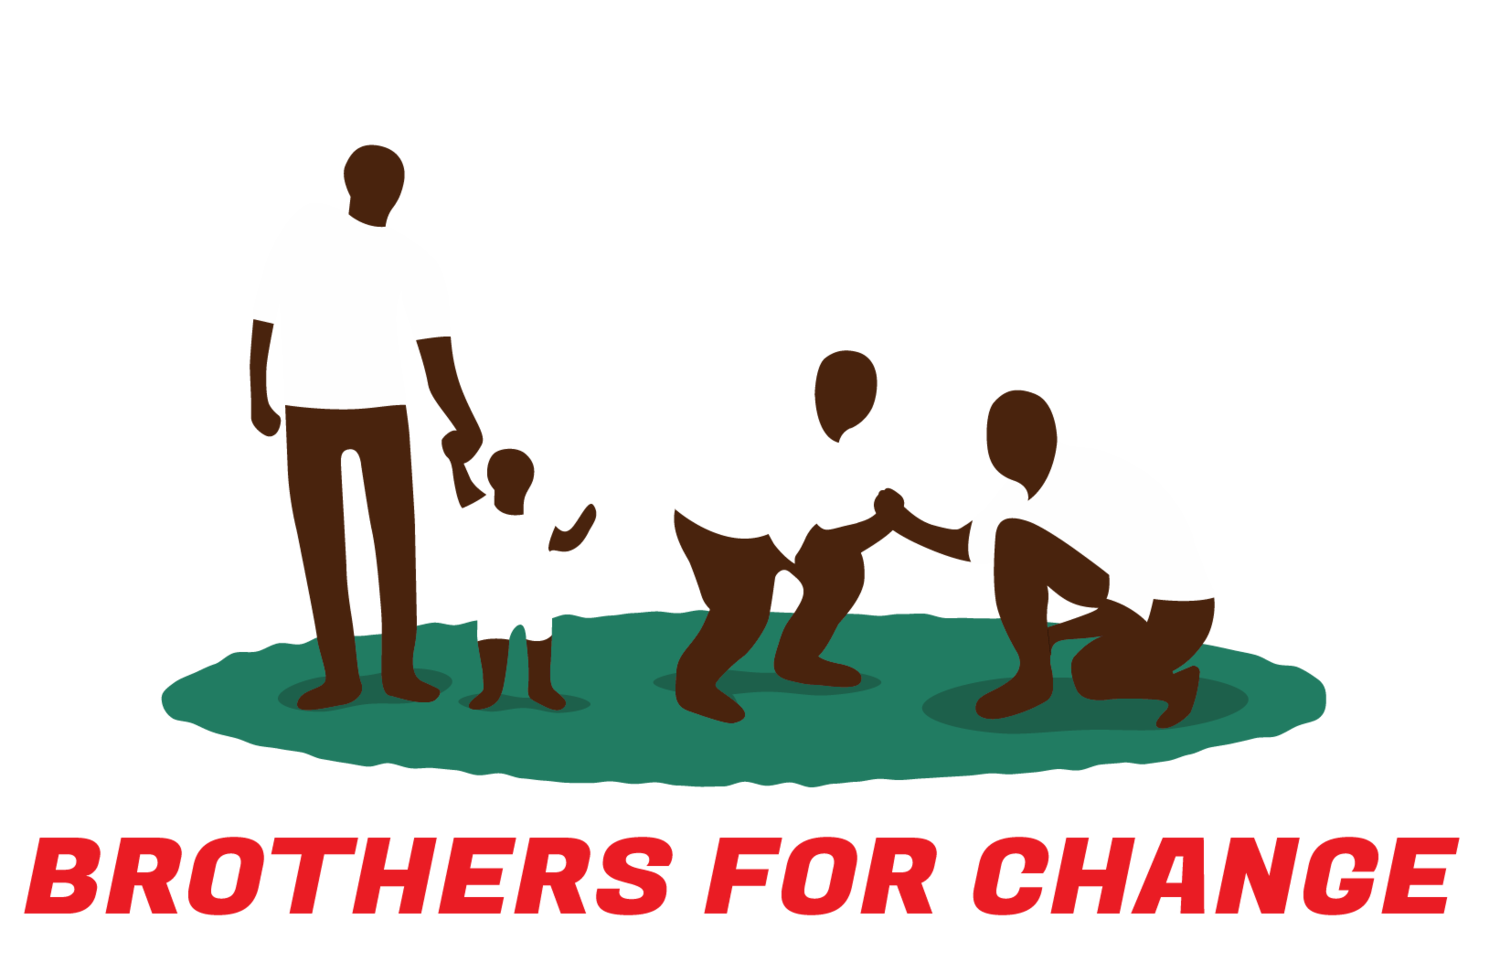 image library download Media brothers for change. Brother clipart individual family member.